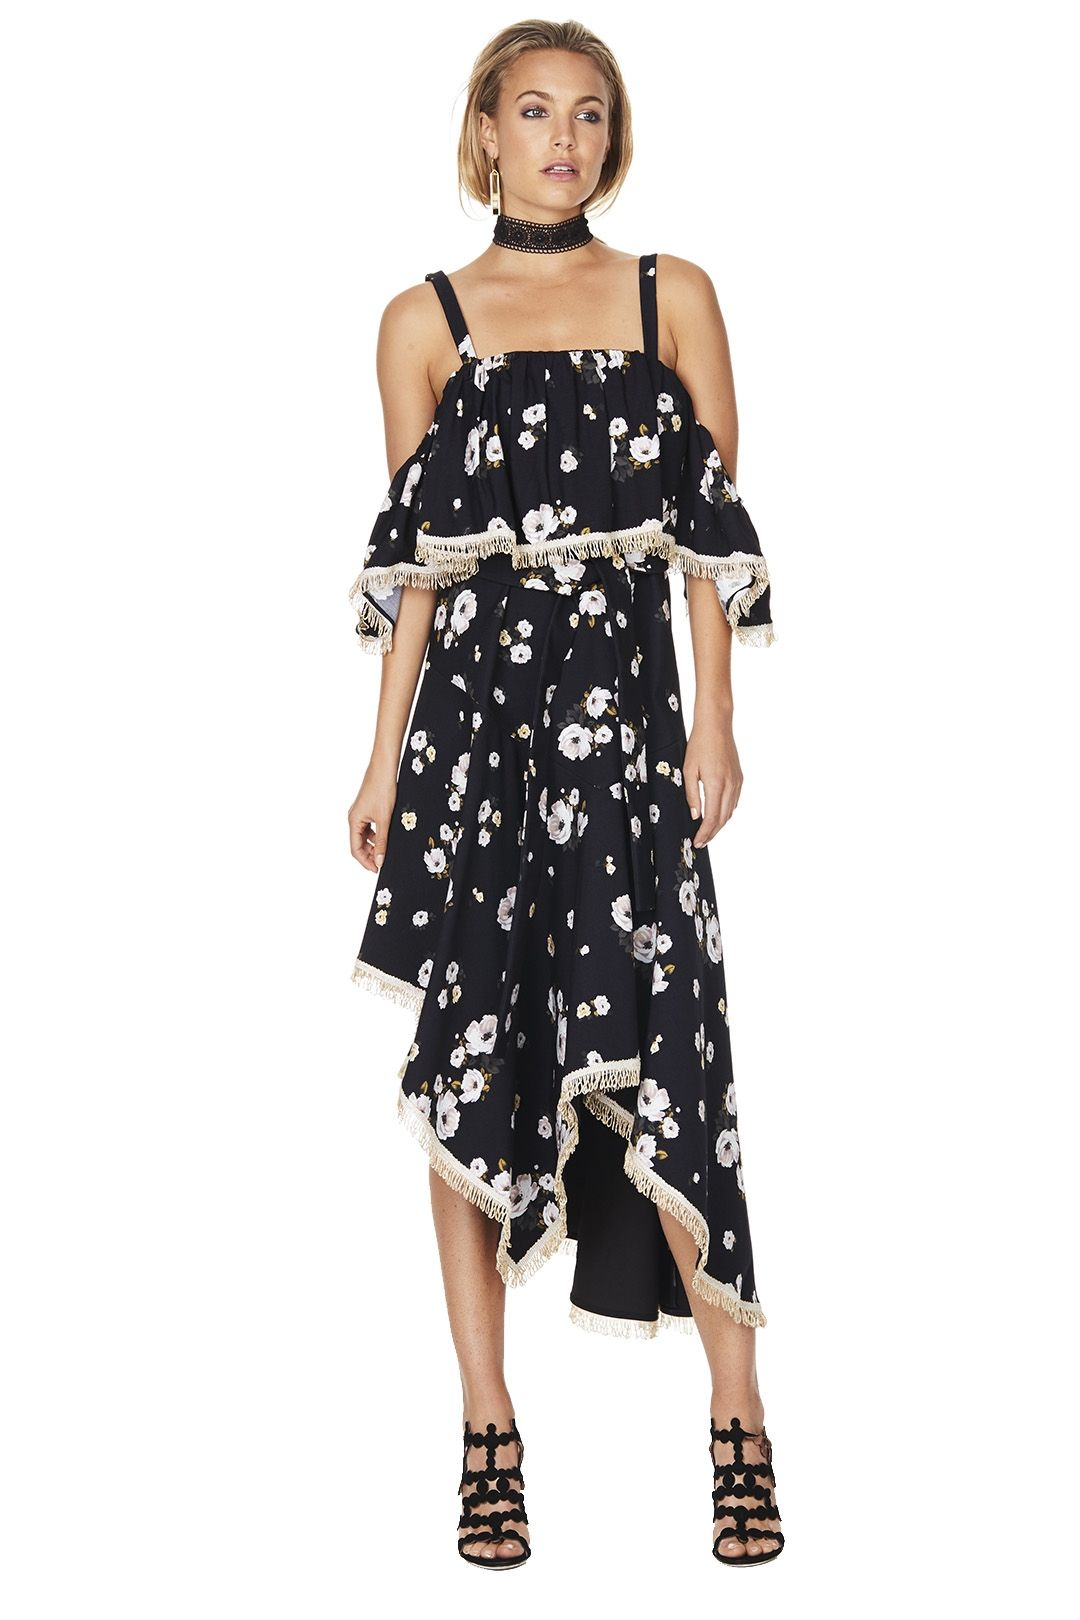 Talulah - Vintage Floral Dress - Black Floral - Front